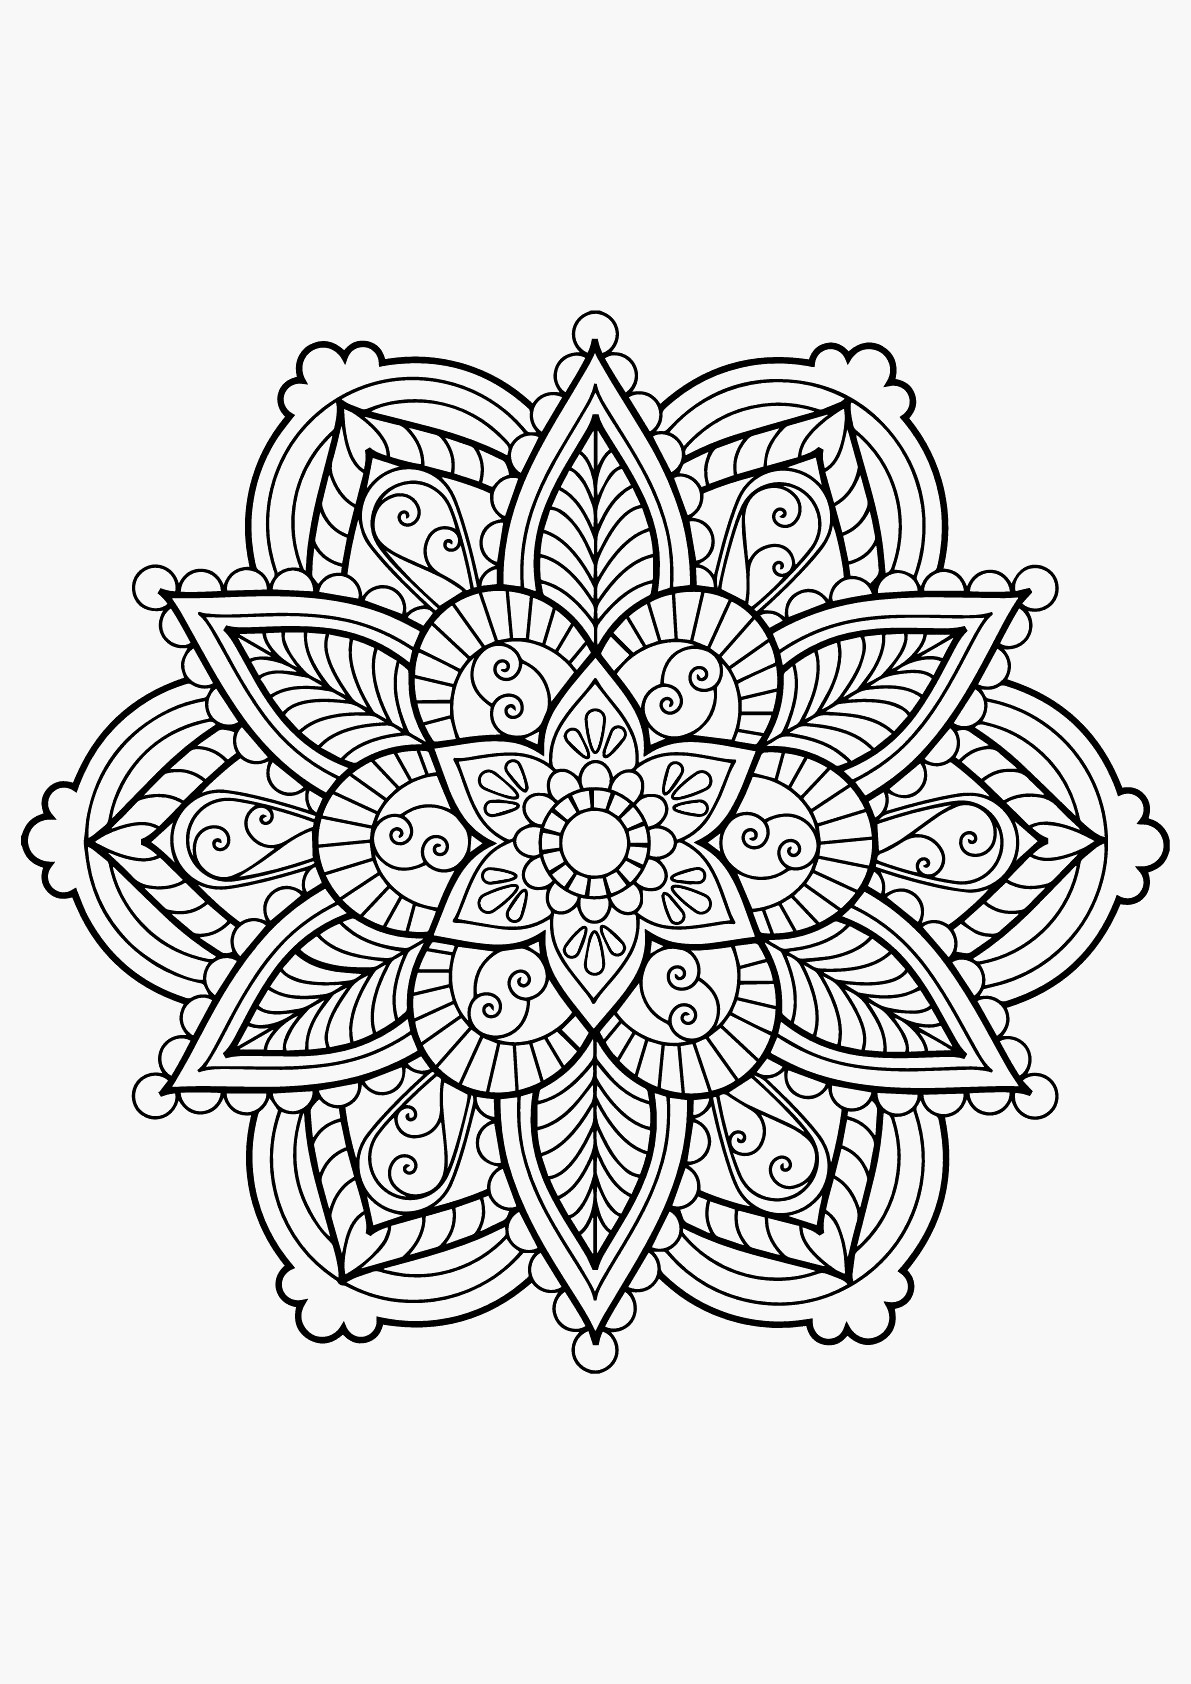 22 Free Mandala Coloring Pages Pdf Collection Coloring Sheets